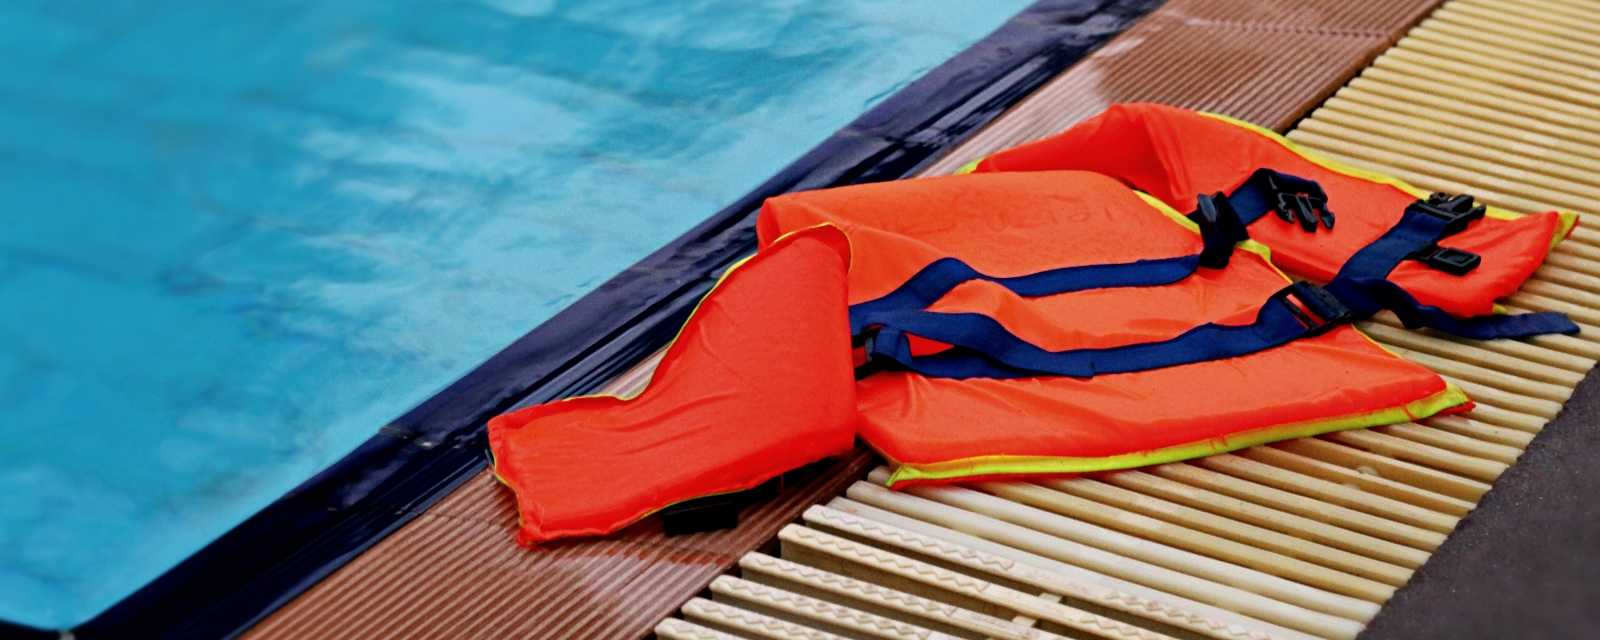 An orange life jacket laying on the edge of the pool deck